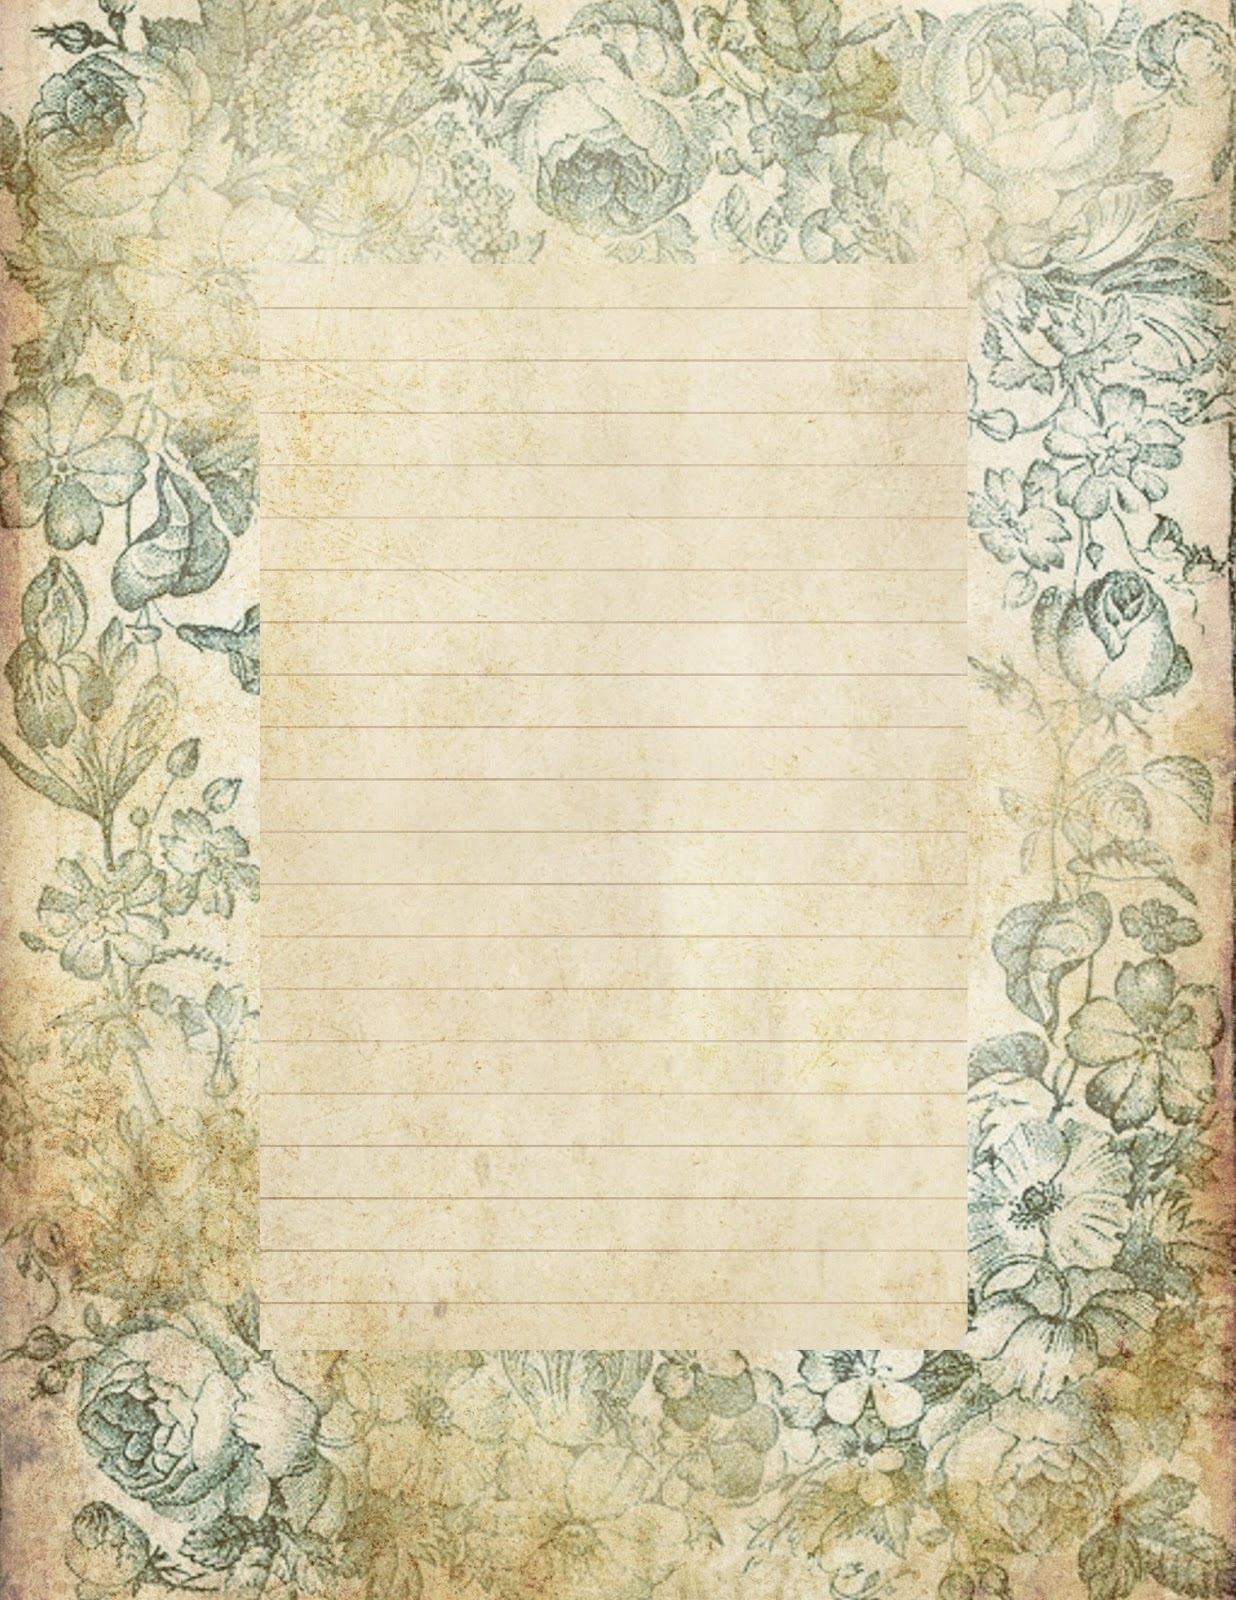 Blue Floral .  Lined Stationary Paper